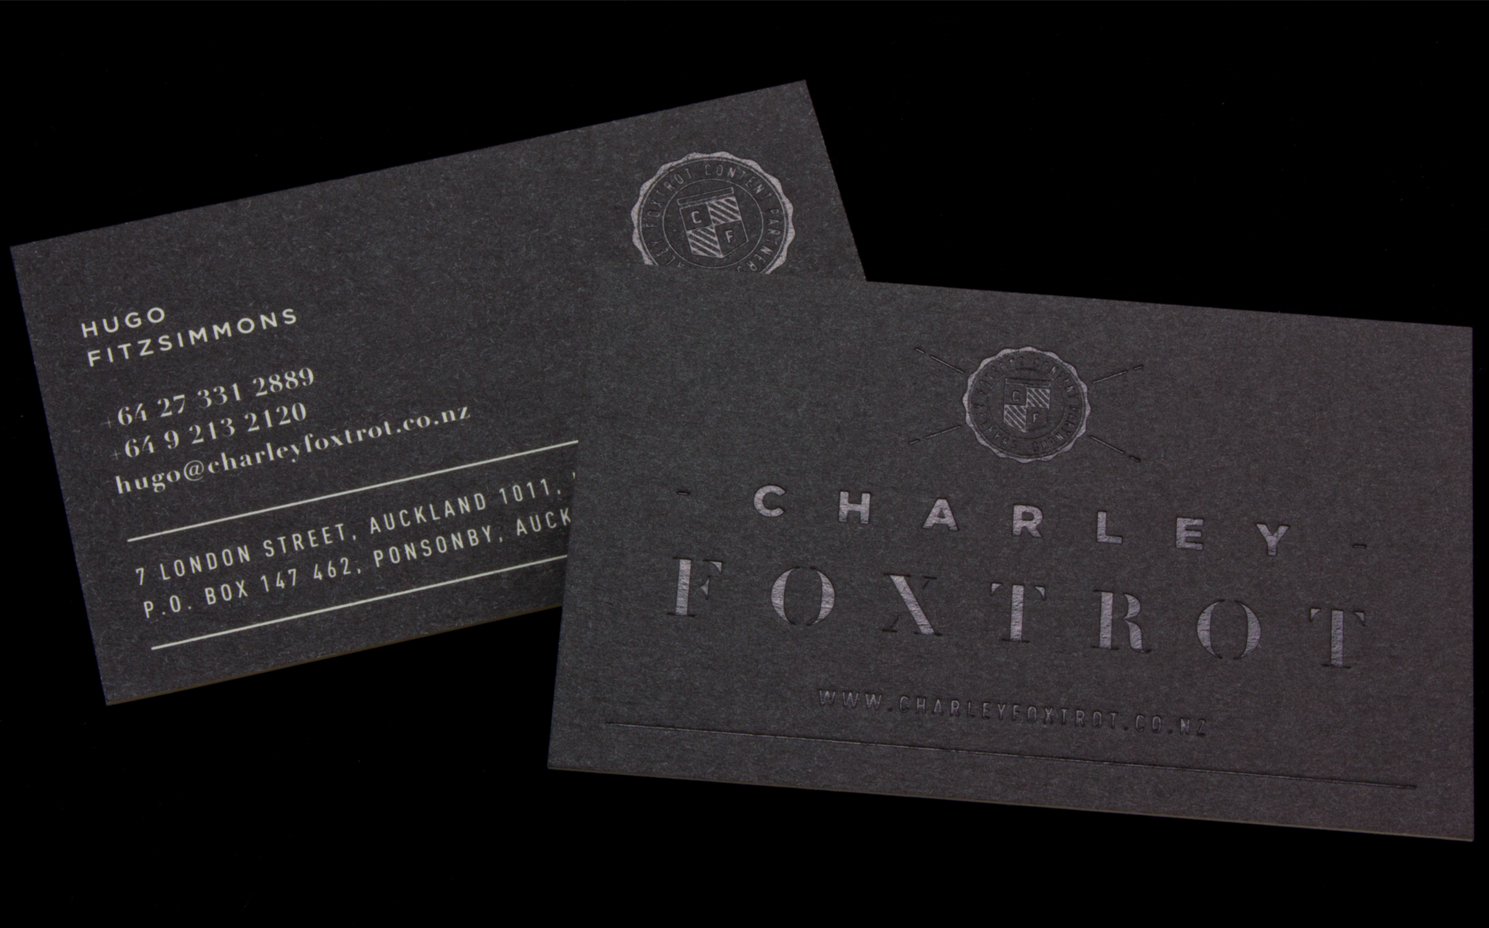 Charley Foxtrot Business Cards Logick Print